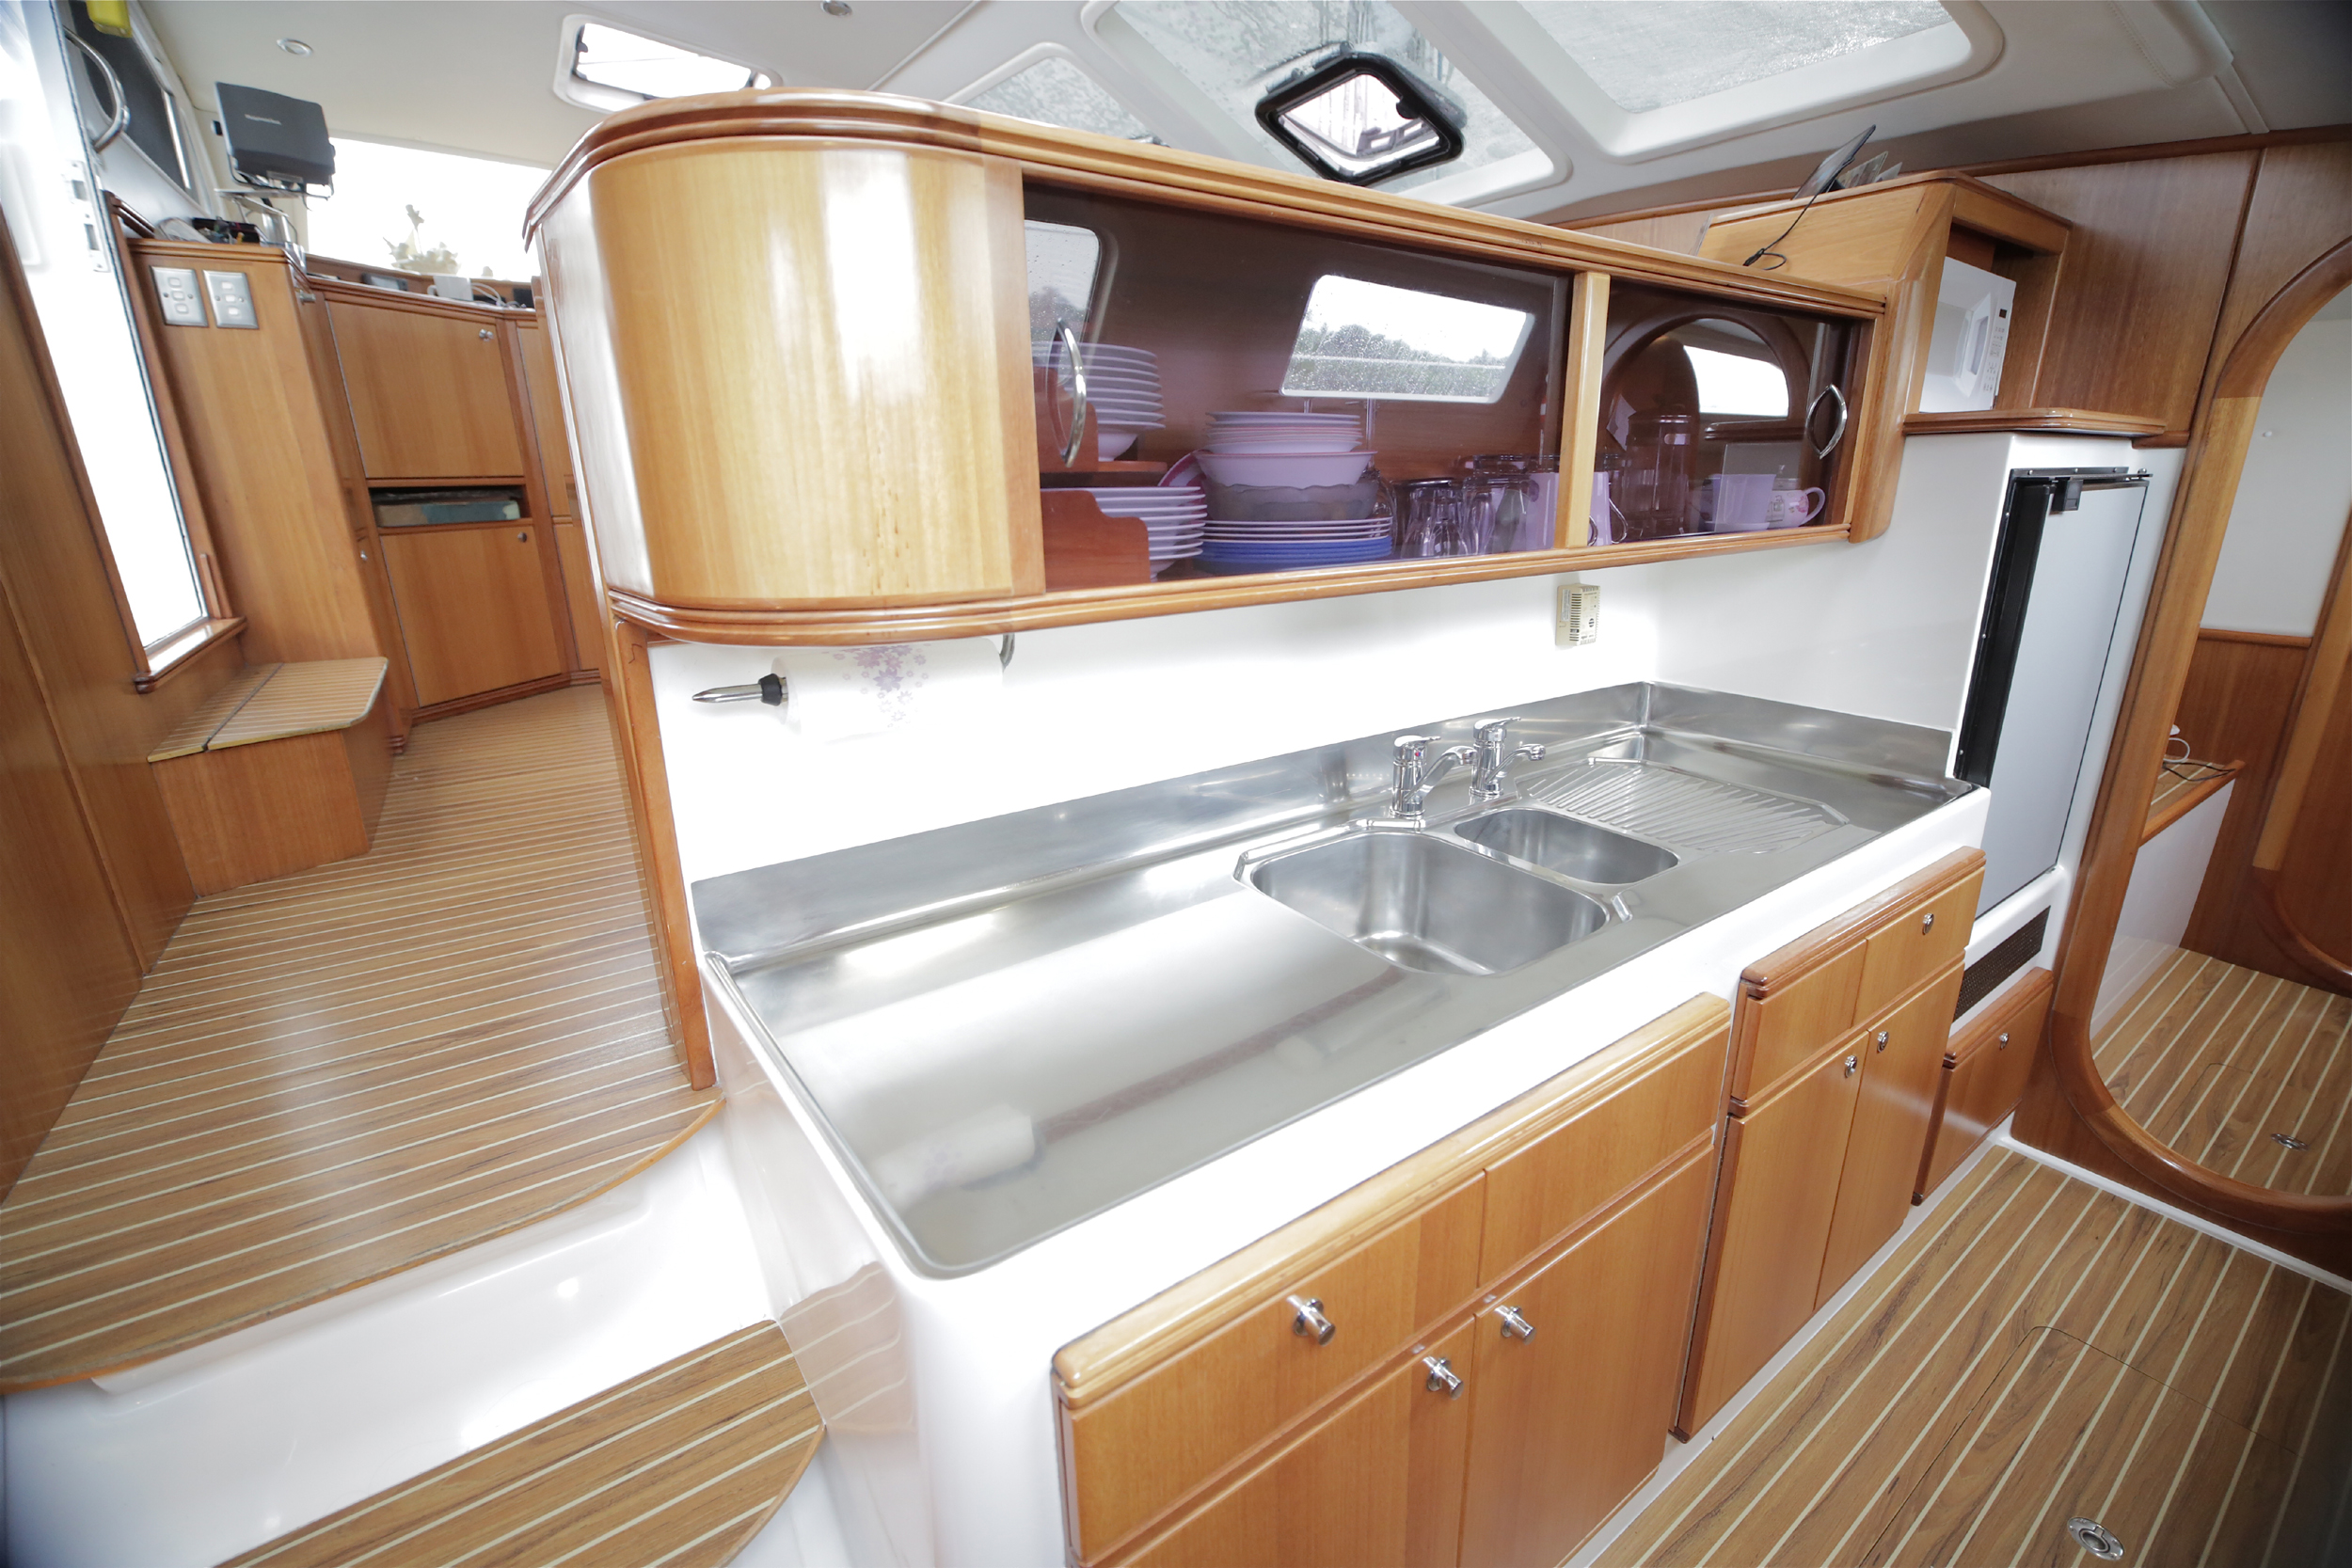 Galley for The galley sink price